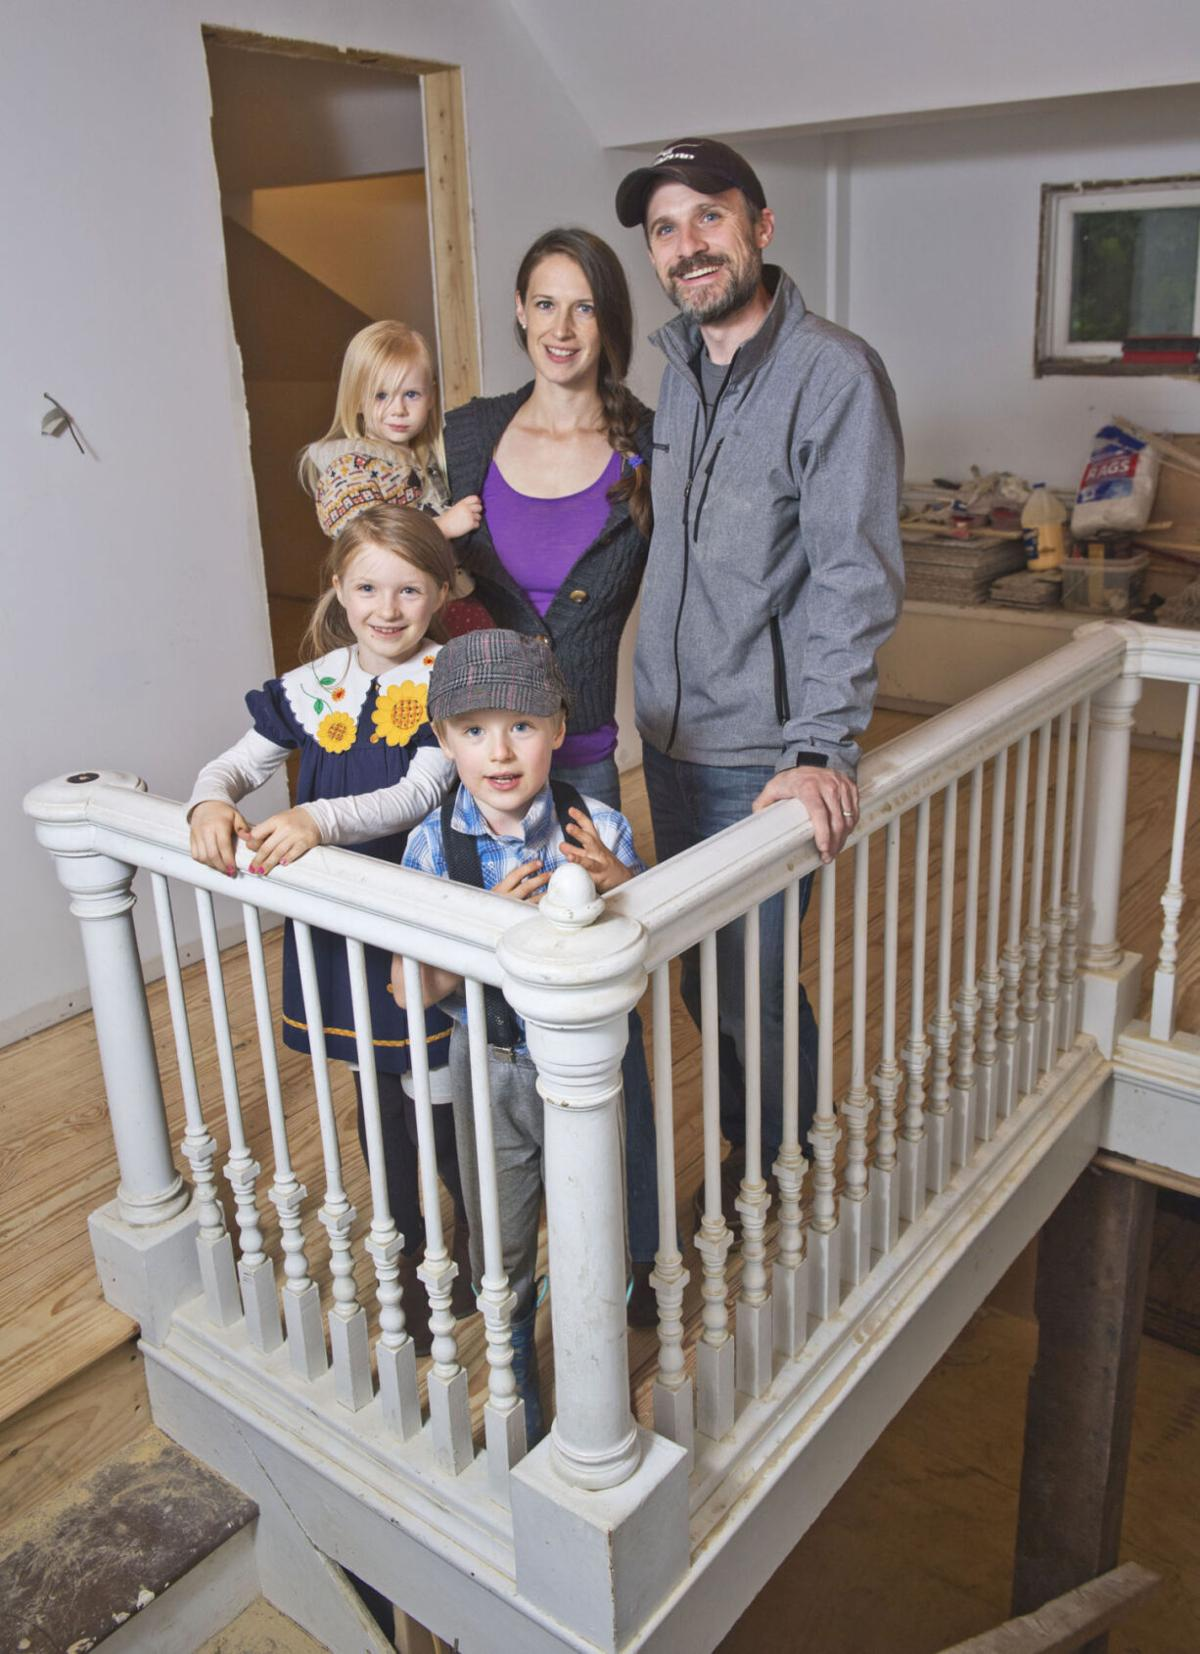 Family records revamp of home